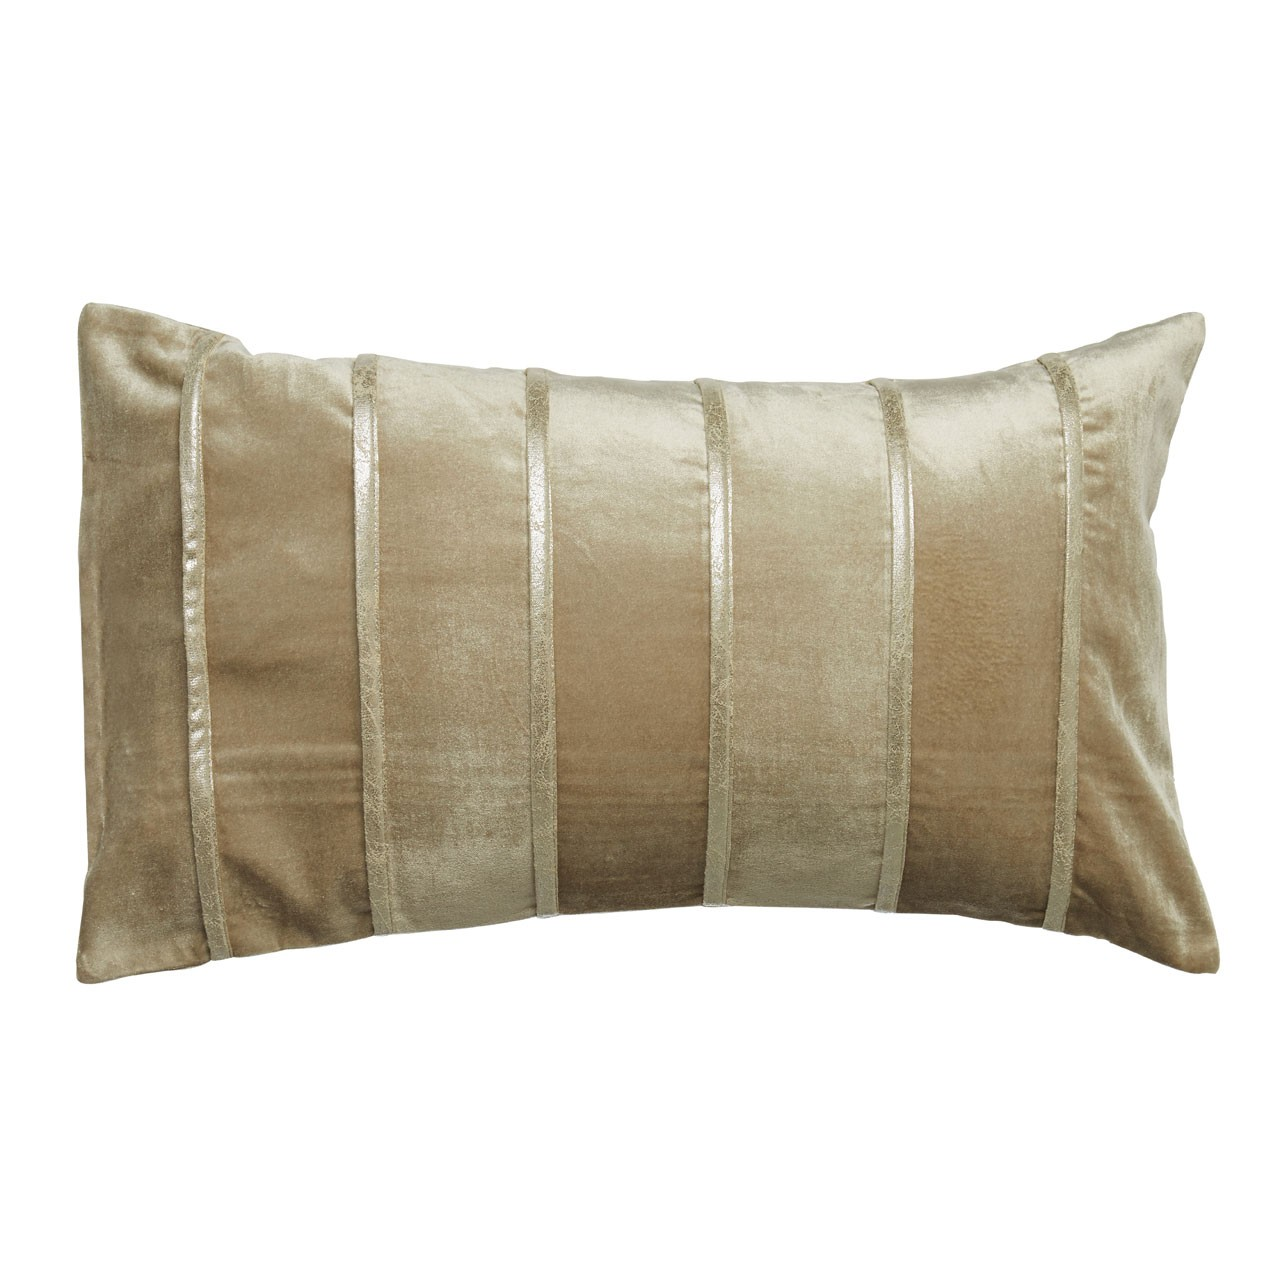 Prime Furnishing Kensington Townhouse Cushion - Beige